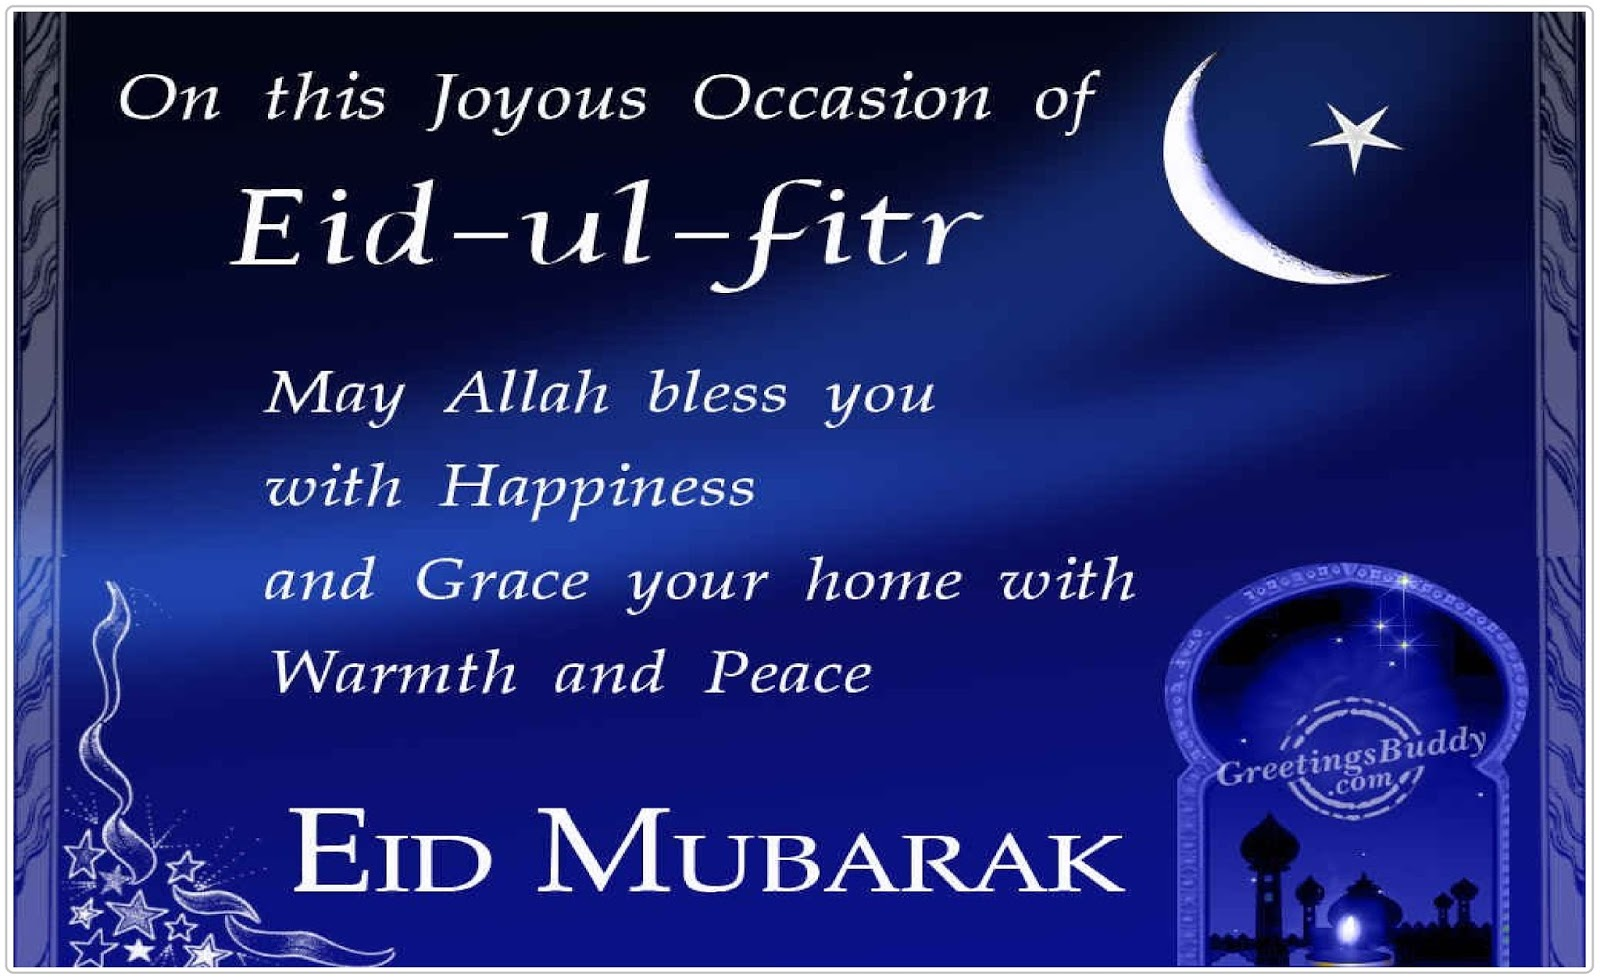 Eid Mubarak Wishes{2018}, Quotes, Messages, SMS, Greetings ...